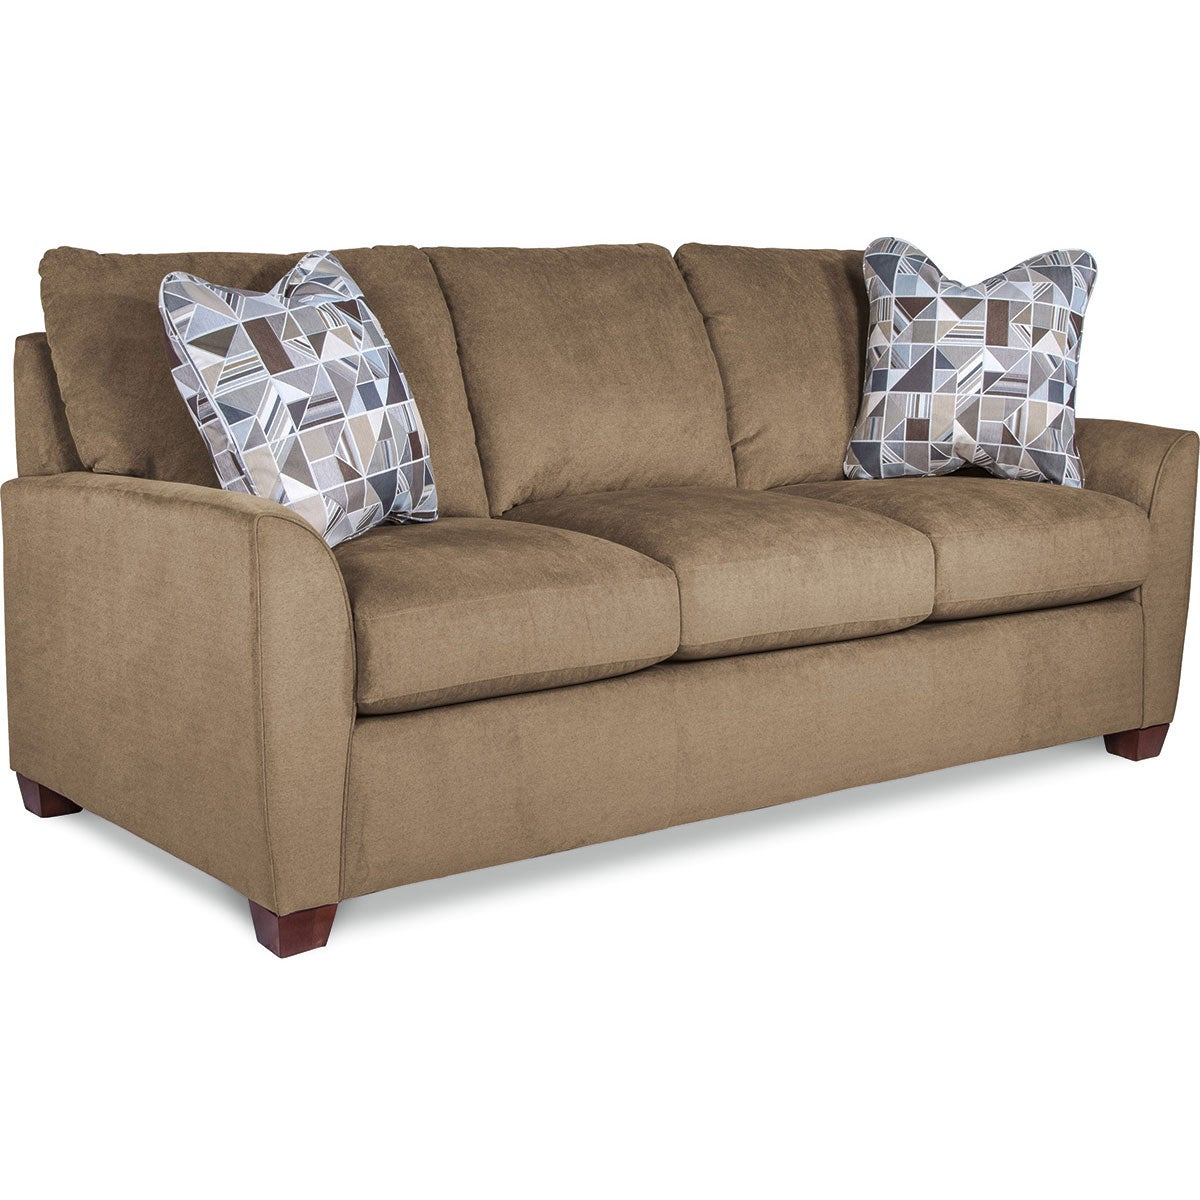 Amy premier sofa for Sofa sofa furniture